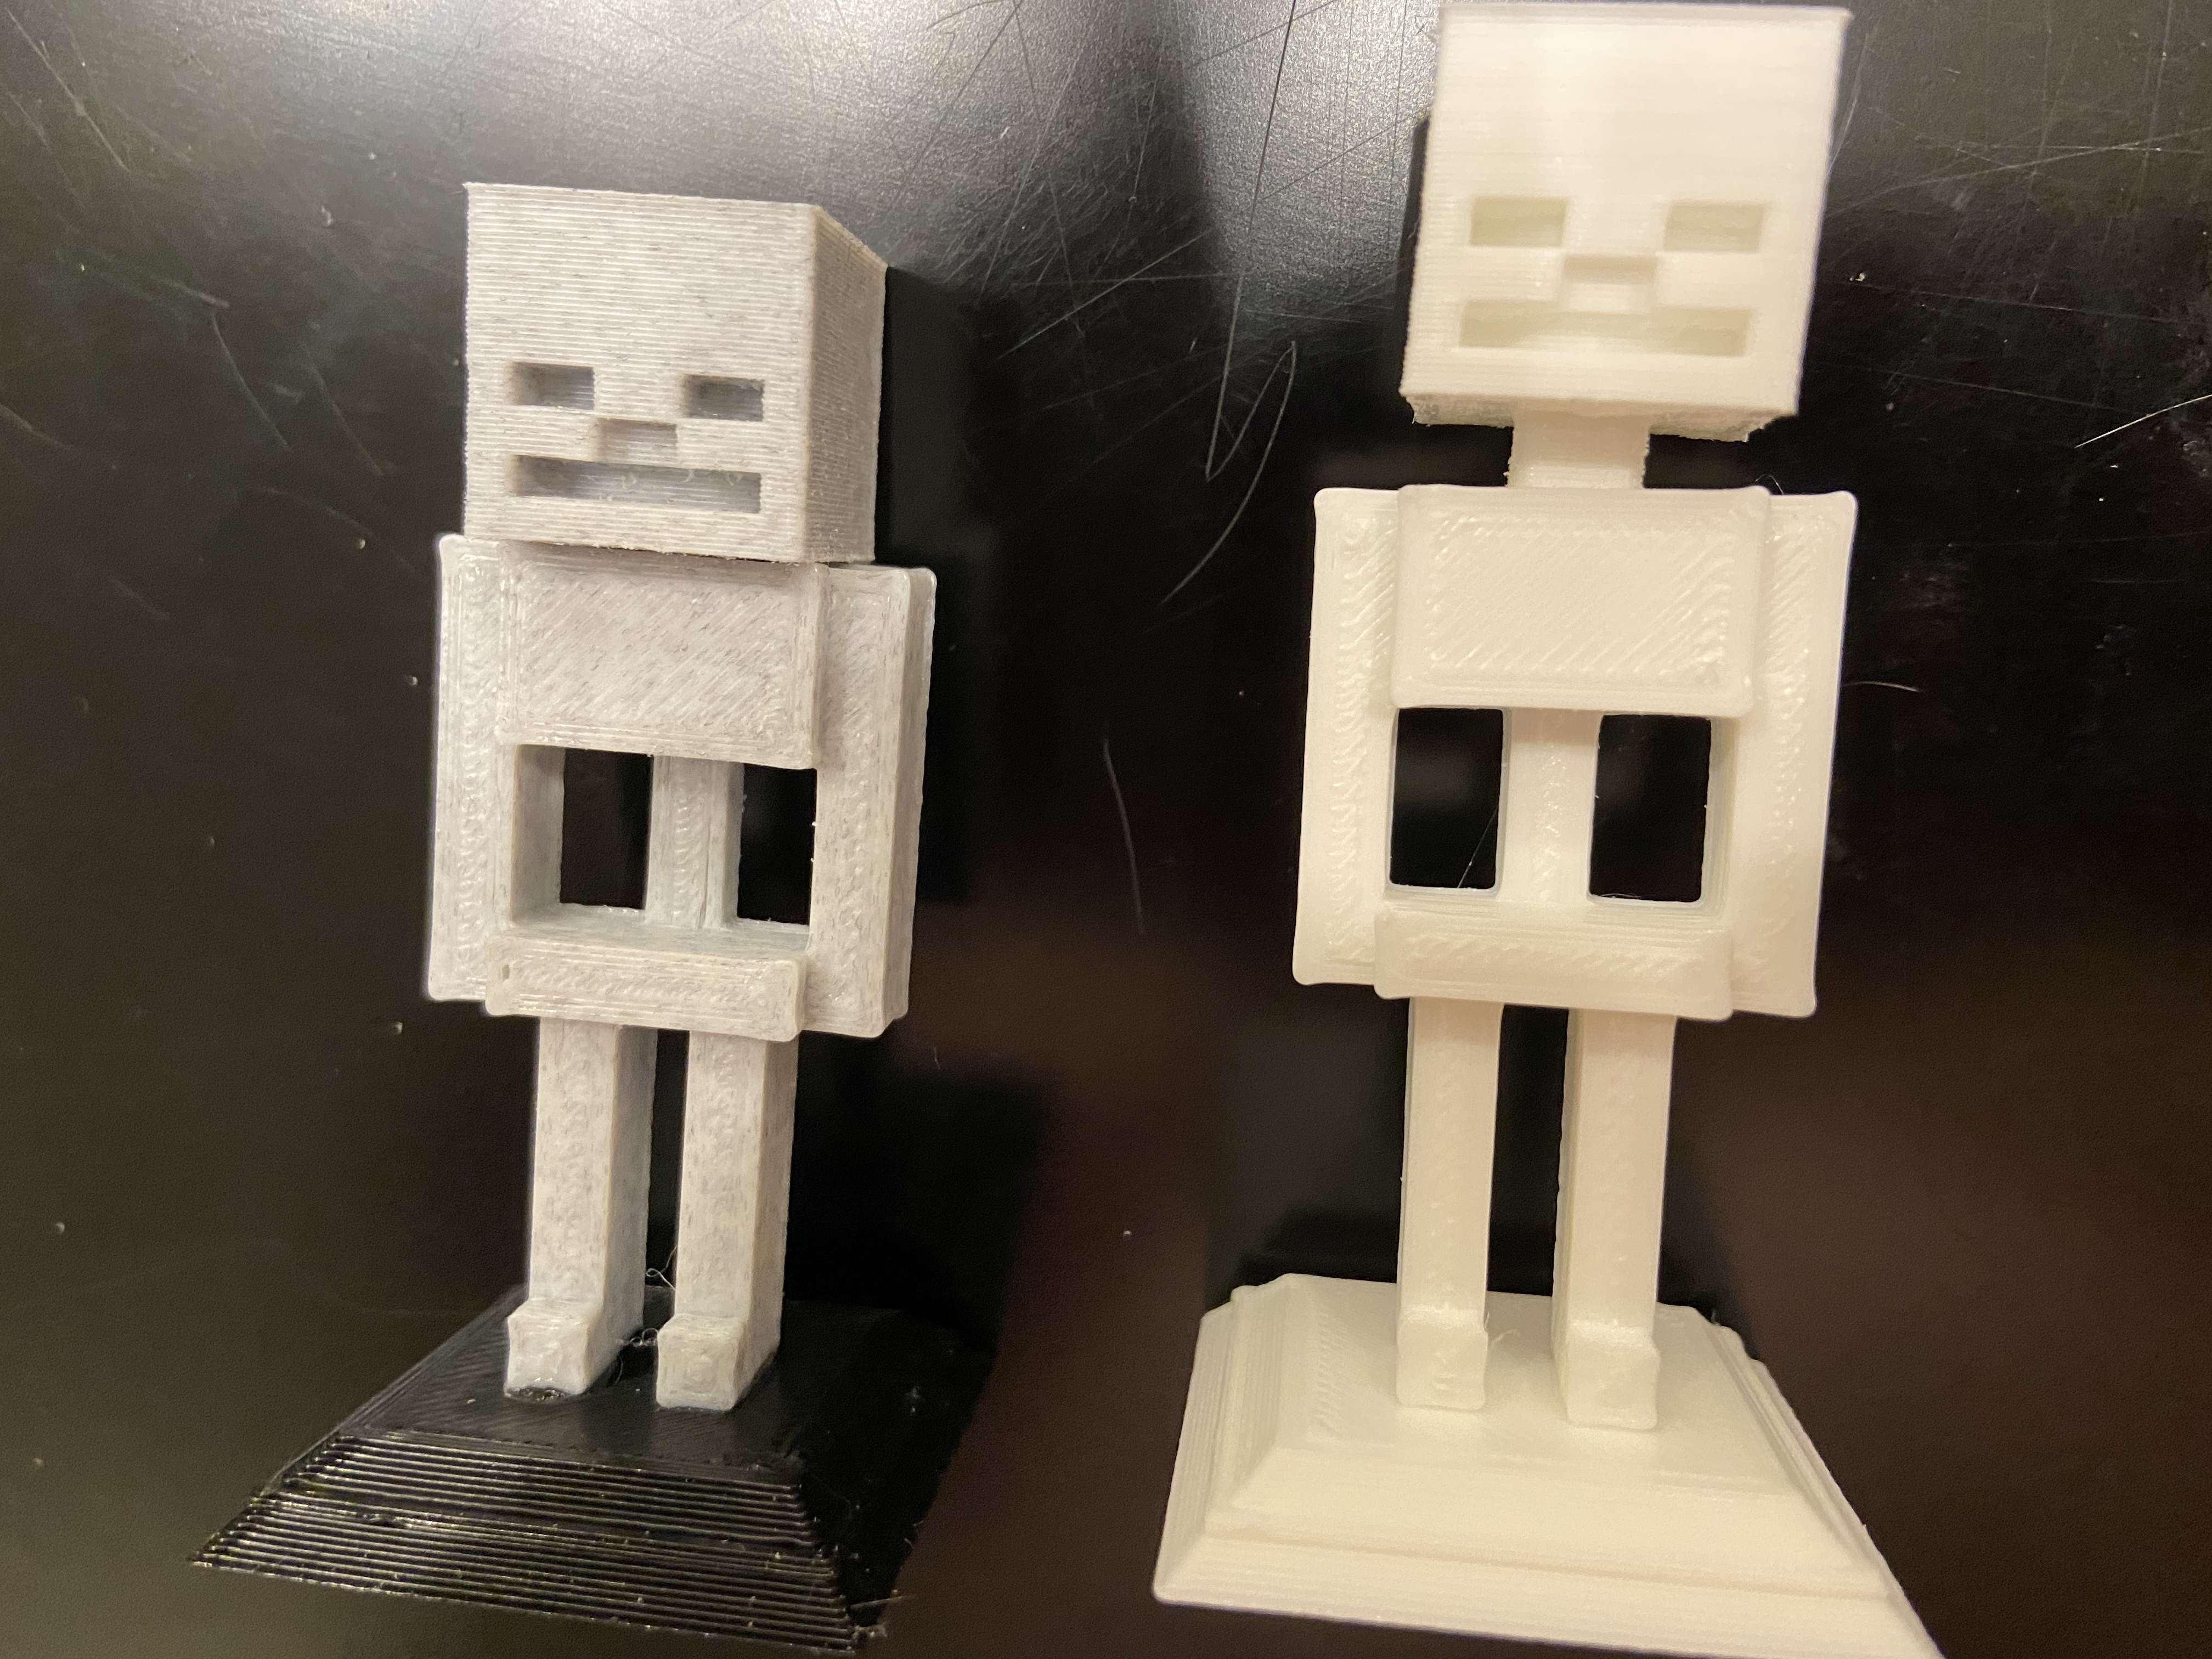 2020-01-20_01.01.23.jpg Download free STL file Complete Minecraft Chess Set • Model to 3D print, Hardcore3D